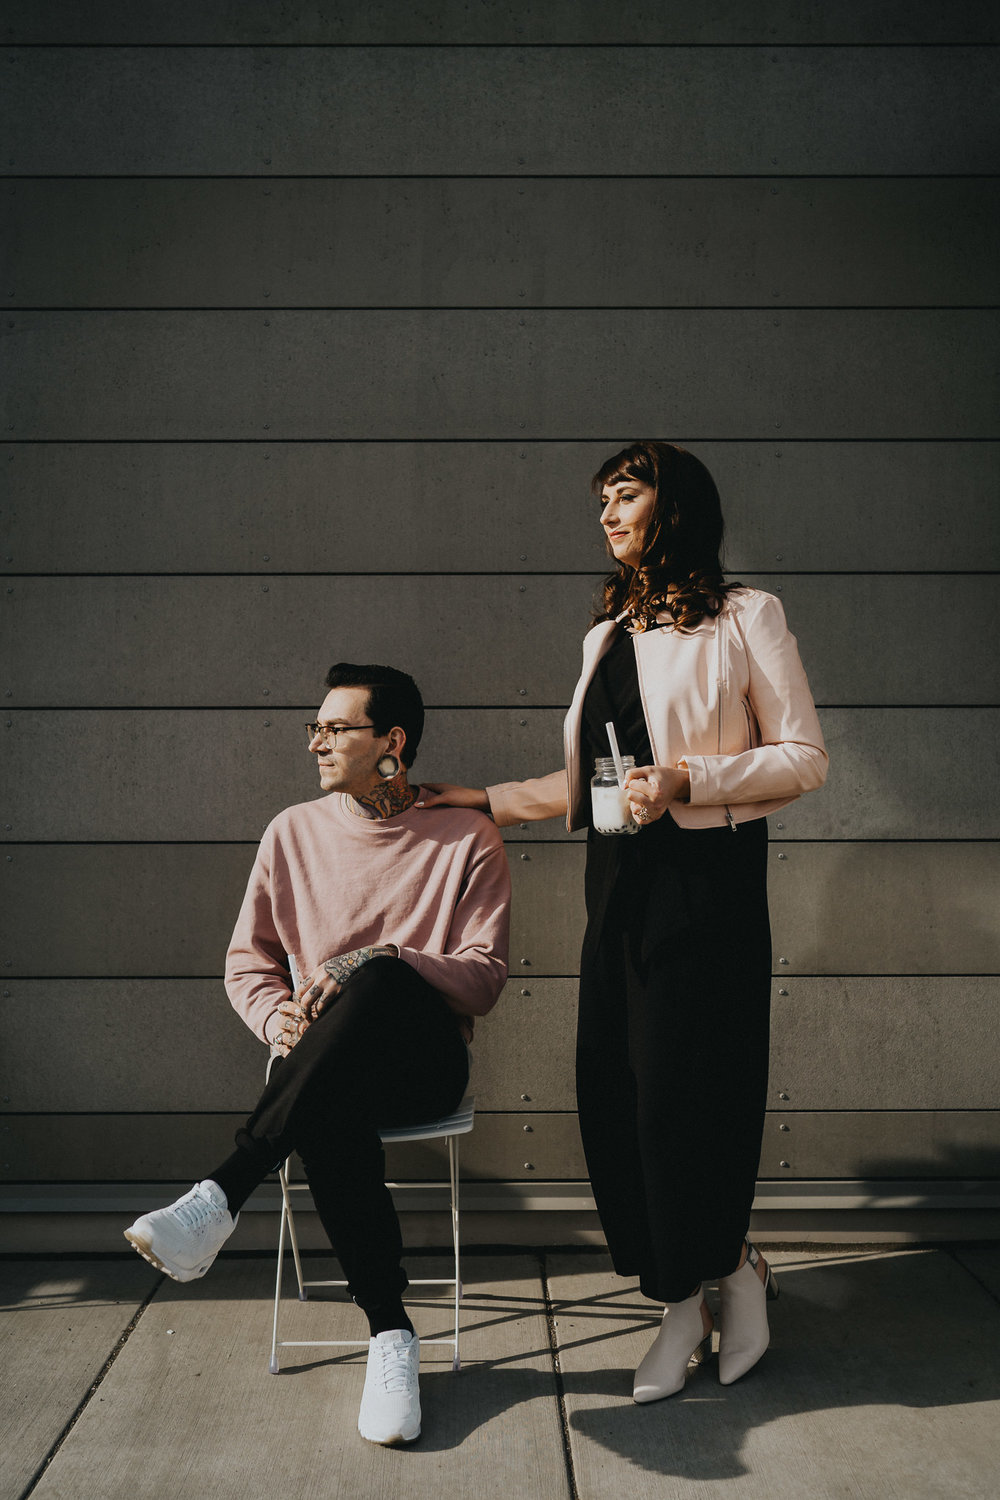 Editorial photography Portland Fashion Hipster